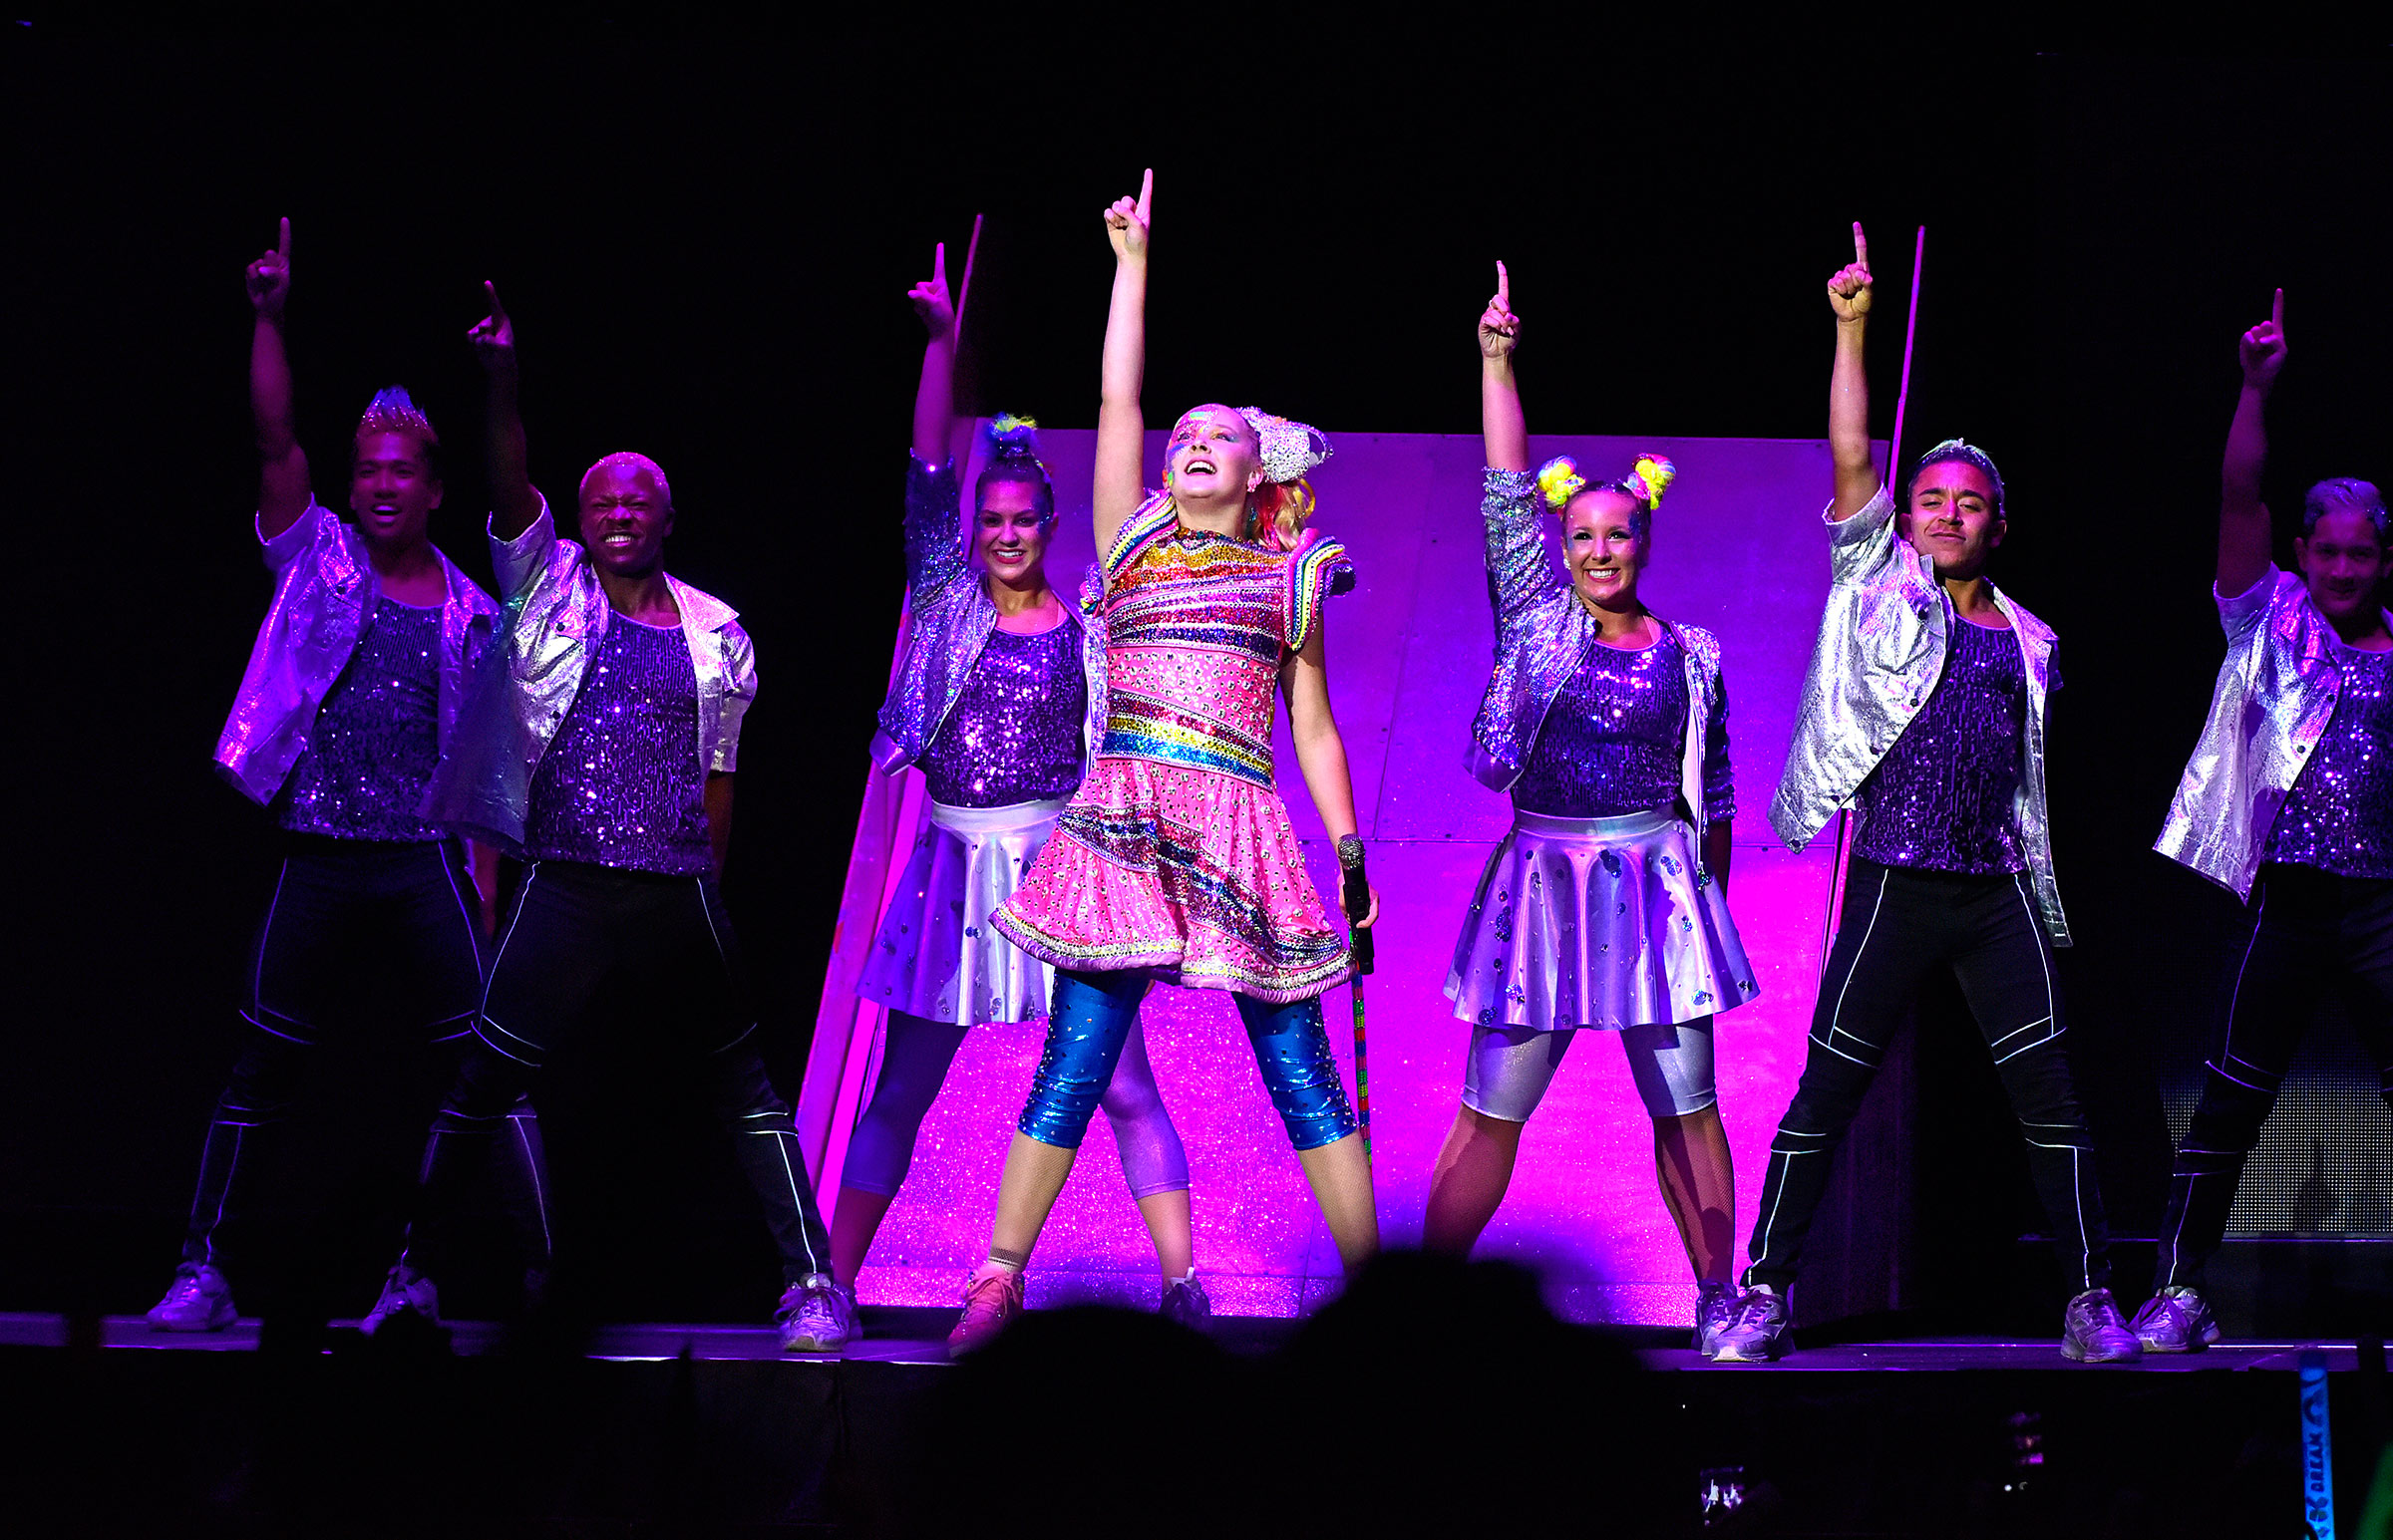 JoJo performs in Anaheim, Calif., on Aug. 13, one of 89 stops on JoJo Siwa D.R.E.A.M. the Tour.